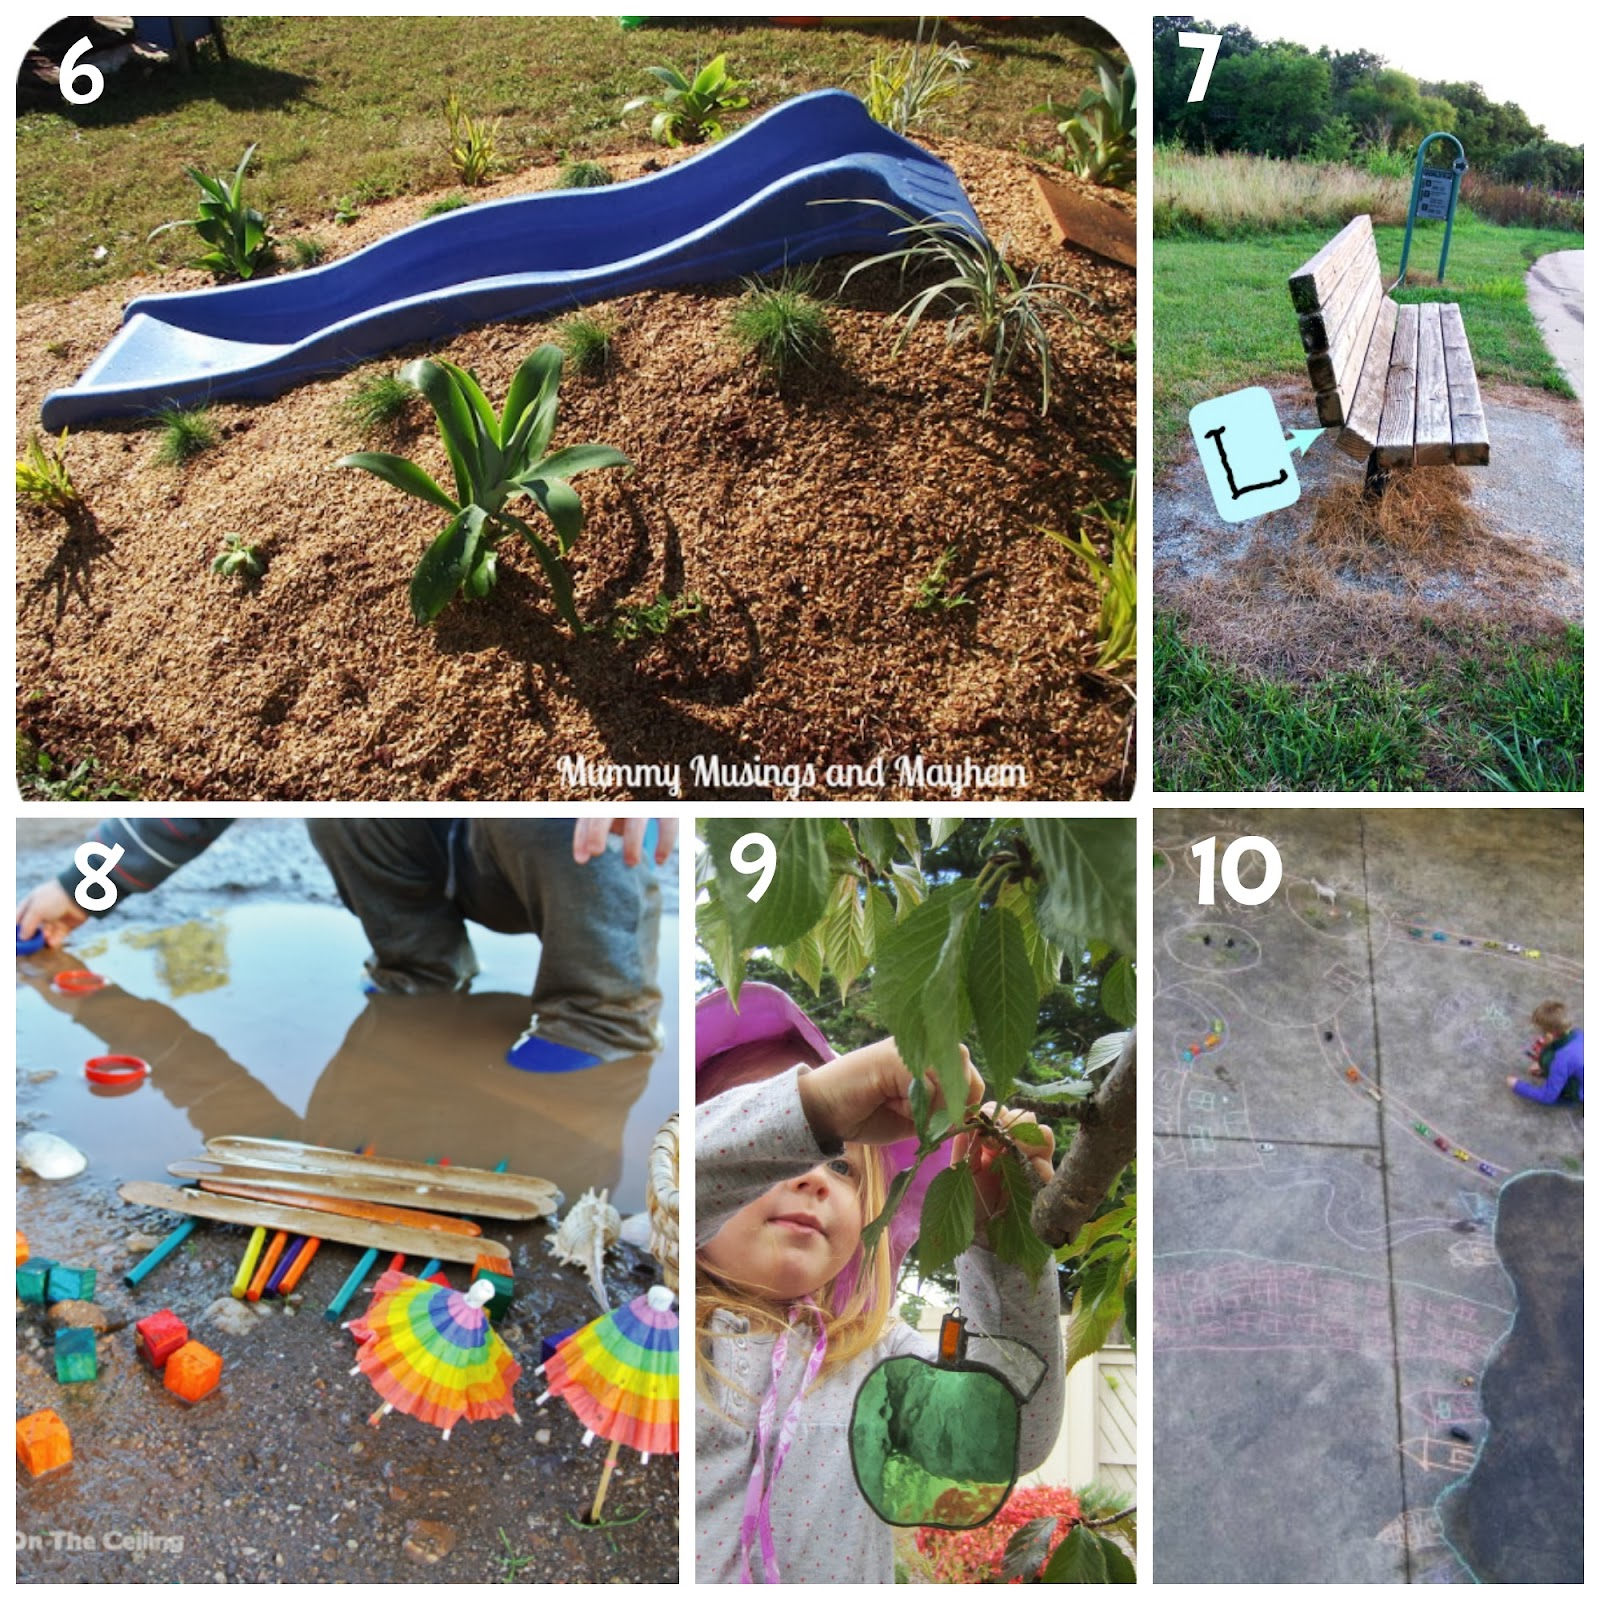 Learn with Play at Home: 10 Backyard Play Ideas